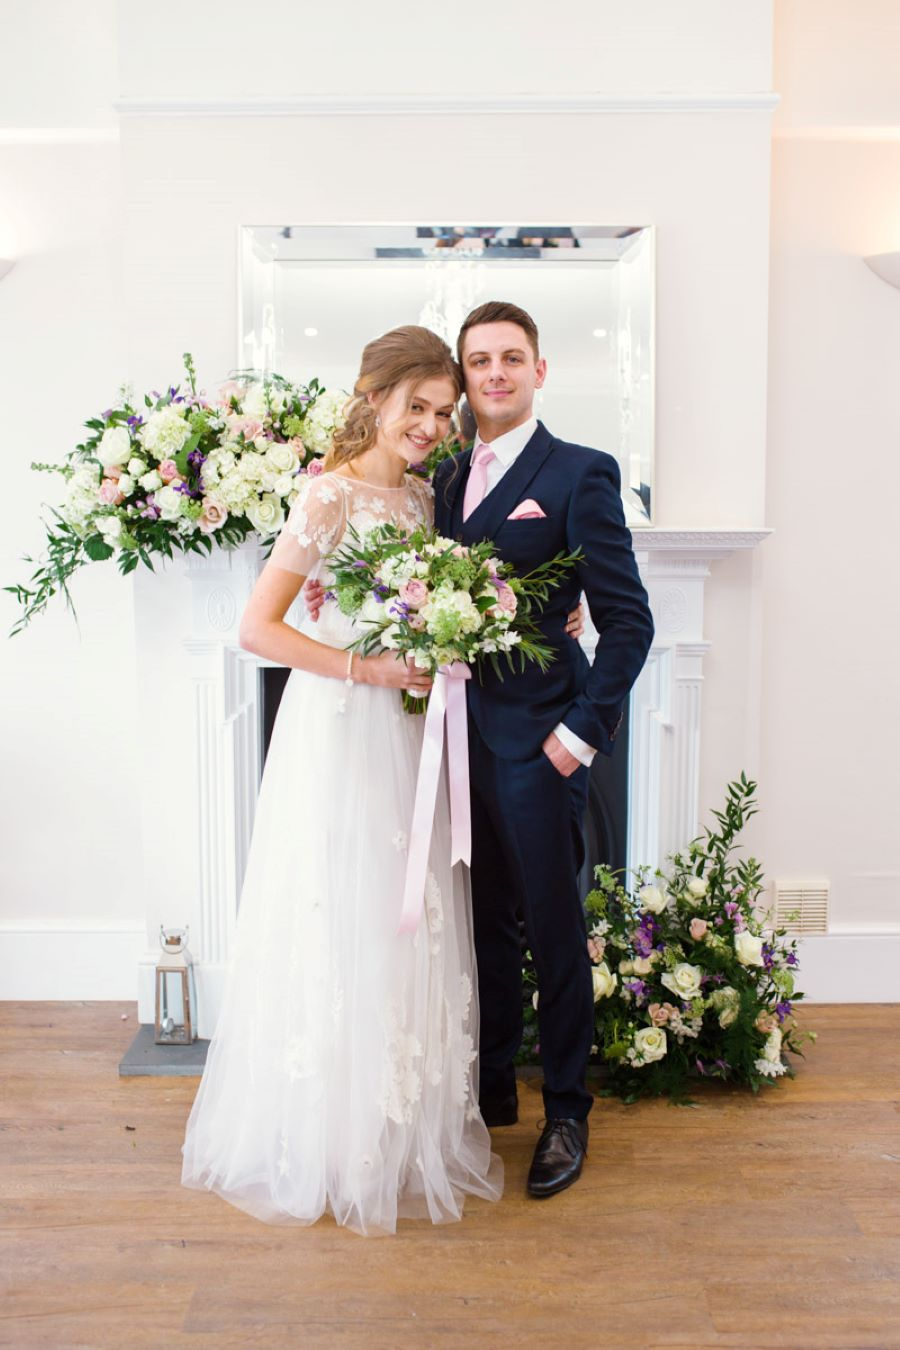 Light and romance with natural blush tones - wedding ideas from Downham Hall. Photographer credit Magical Moments Photography (14)